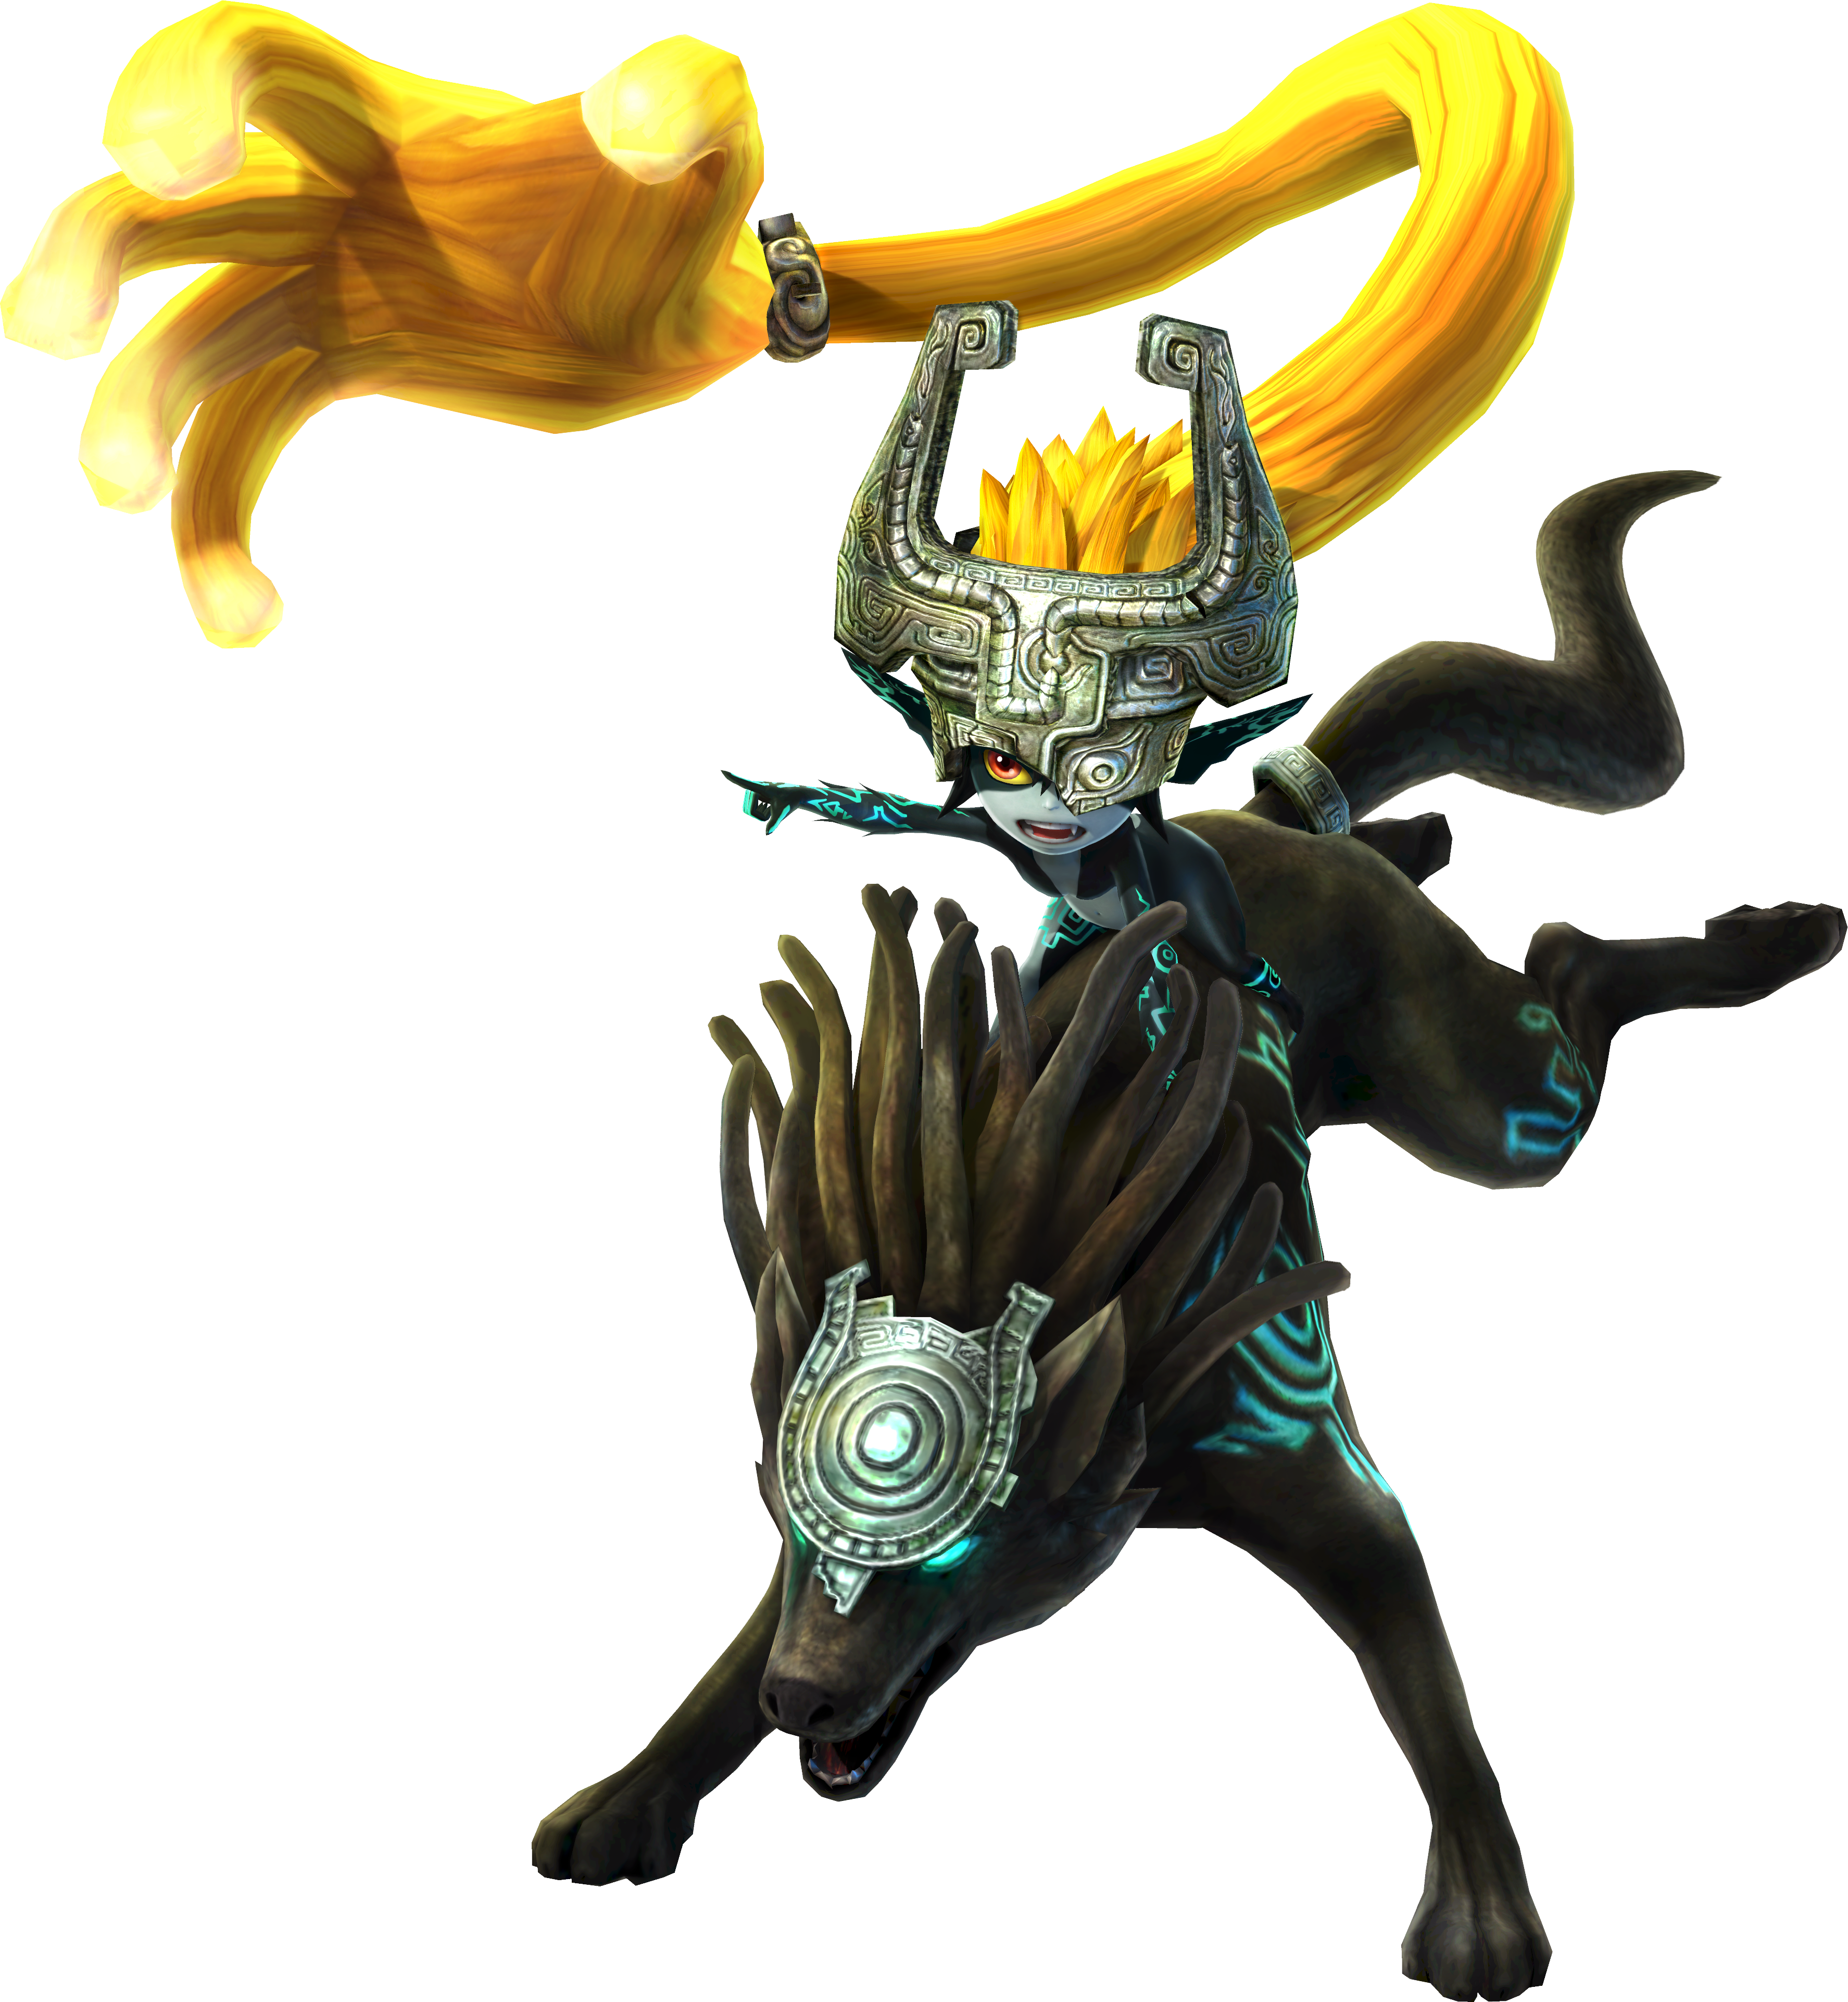 midna drawing hyrule warriors